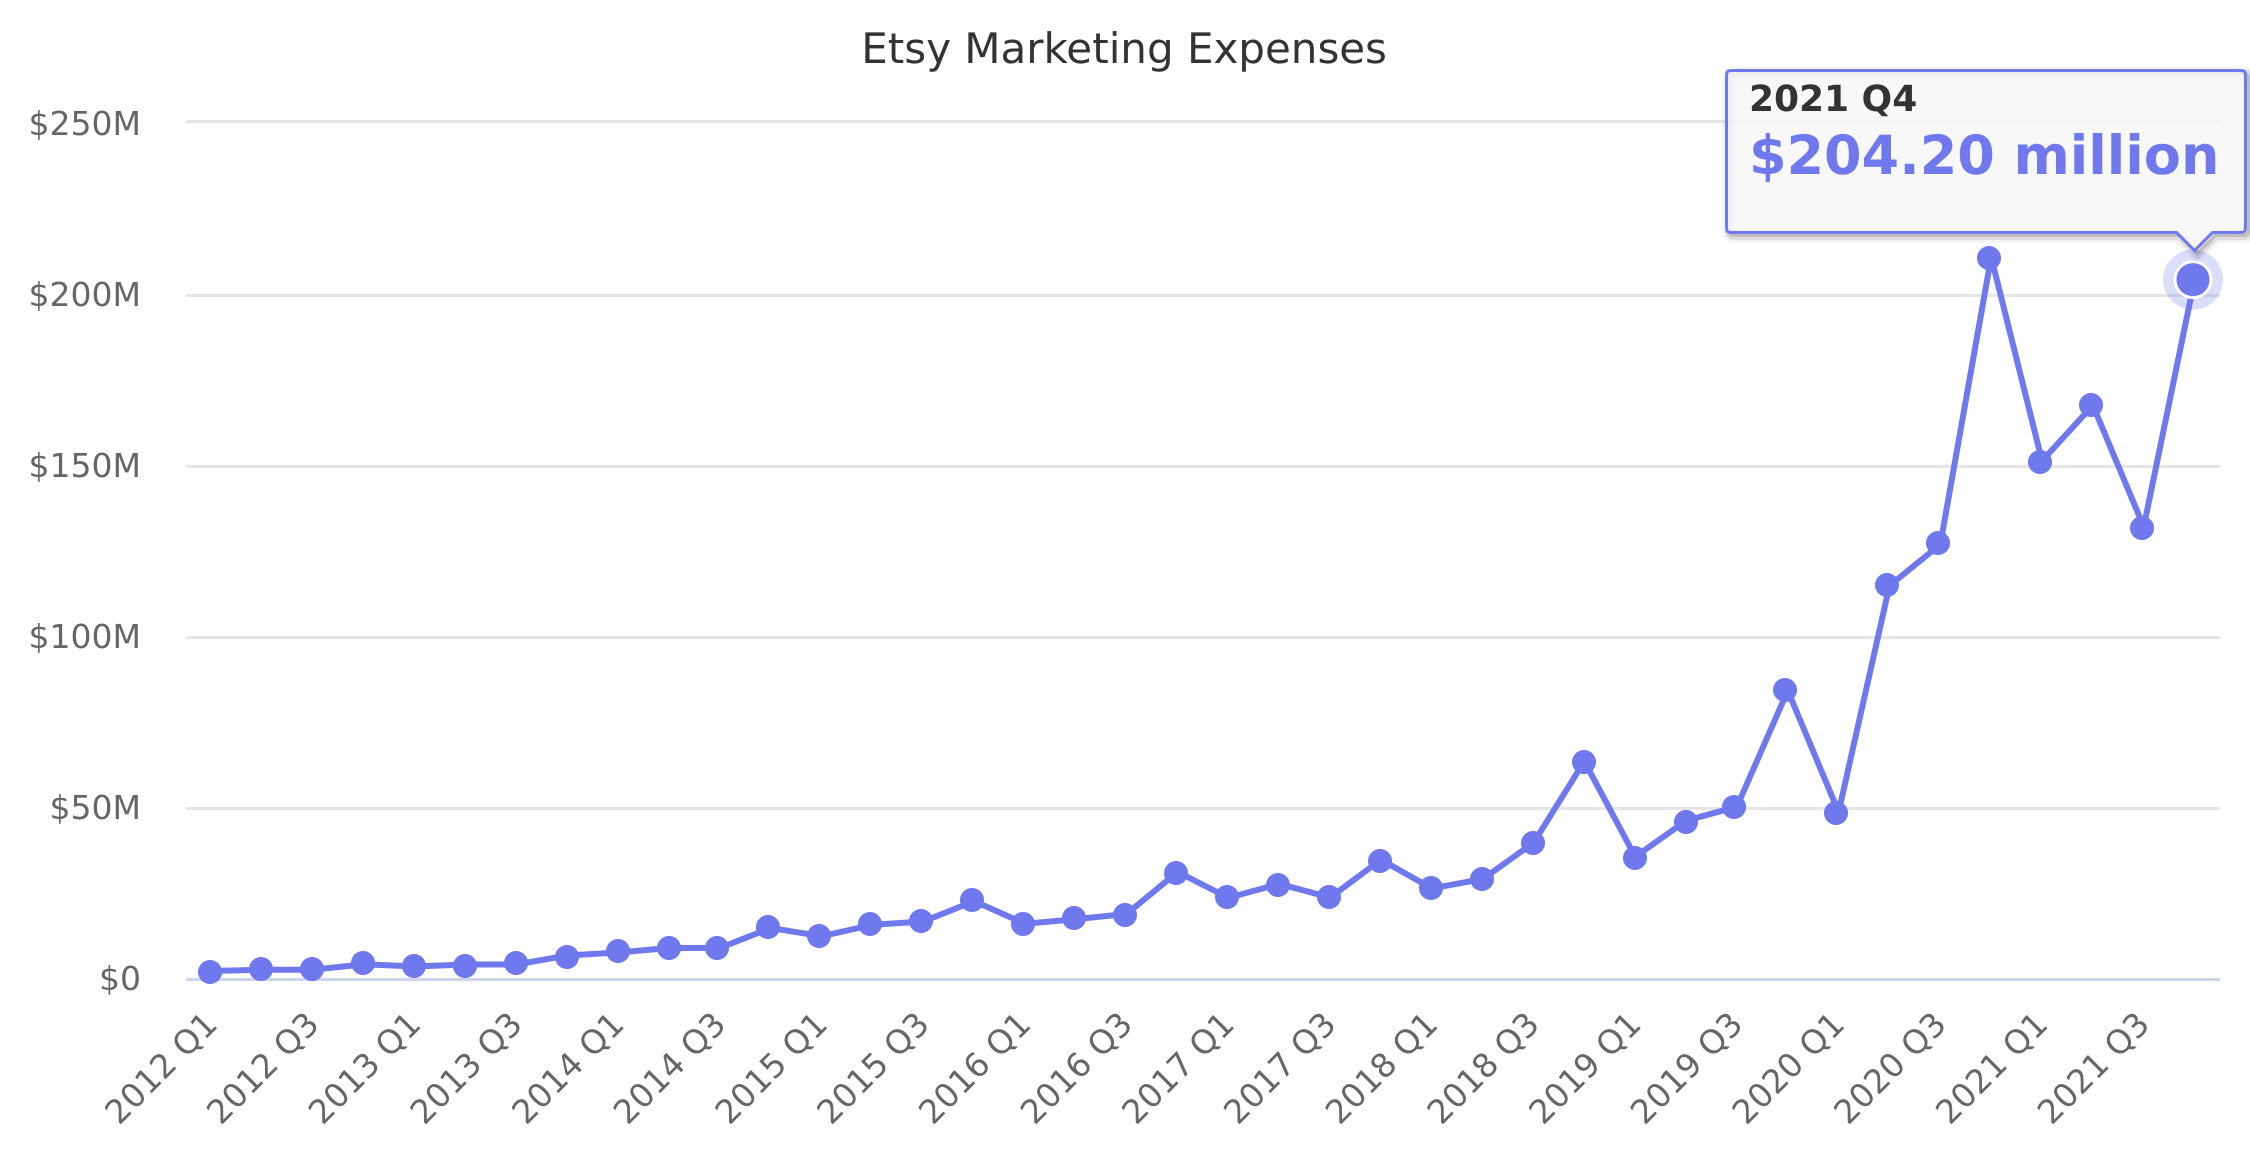 Etsy Marketing Expenses 2012-2018